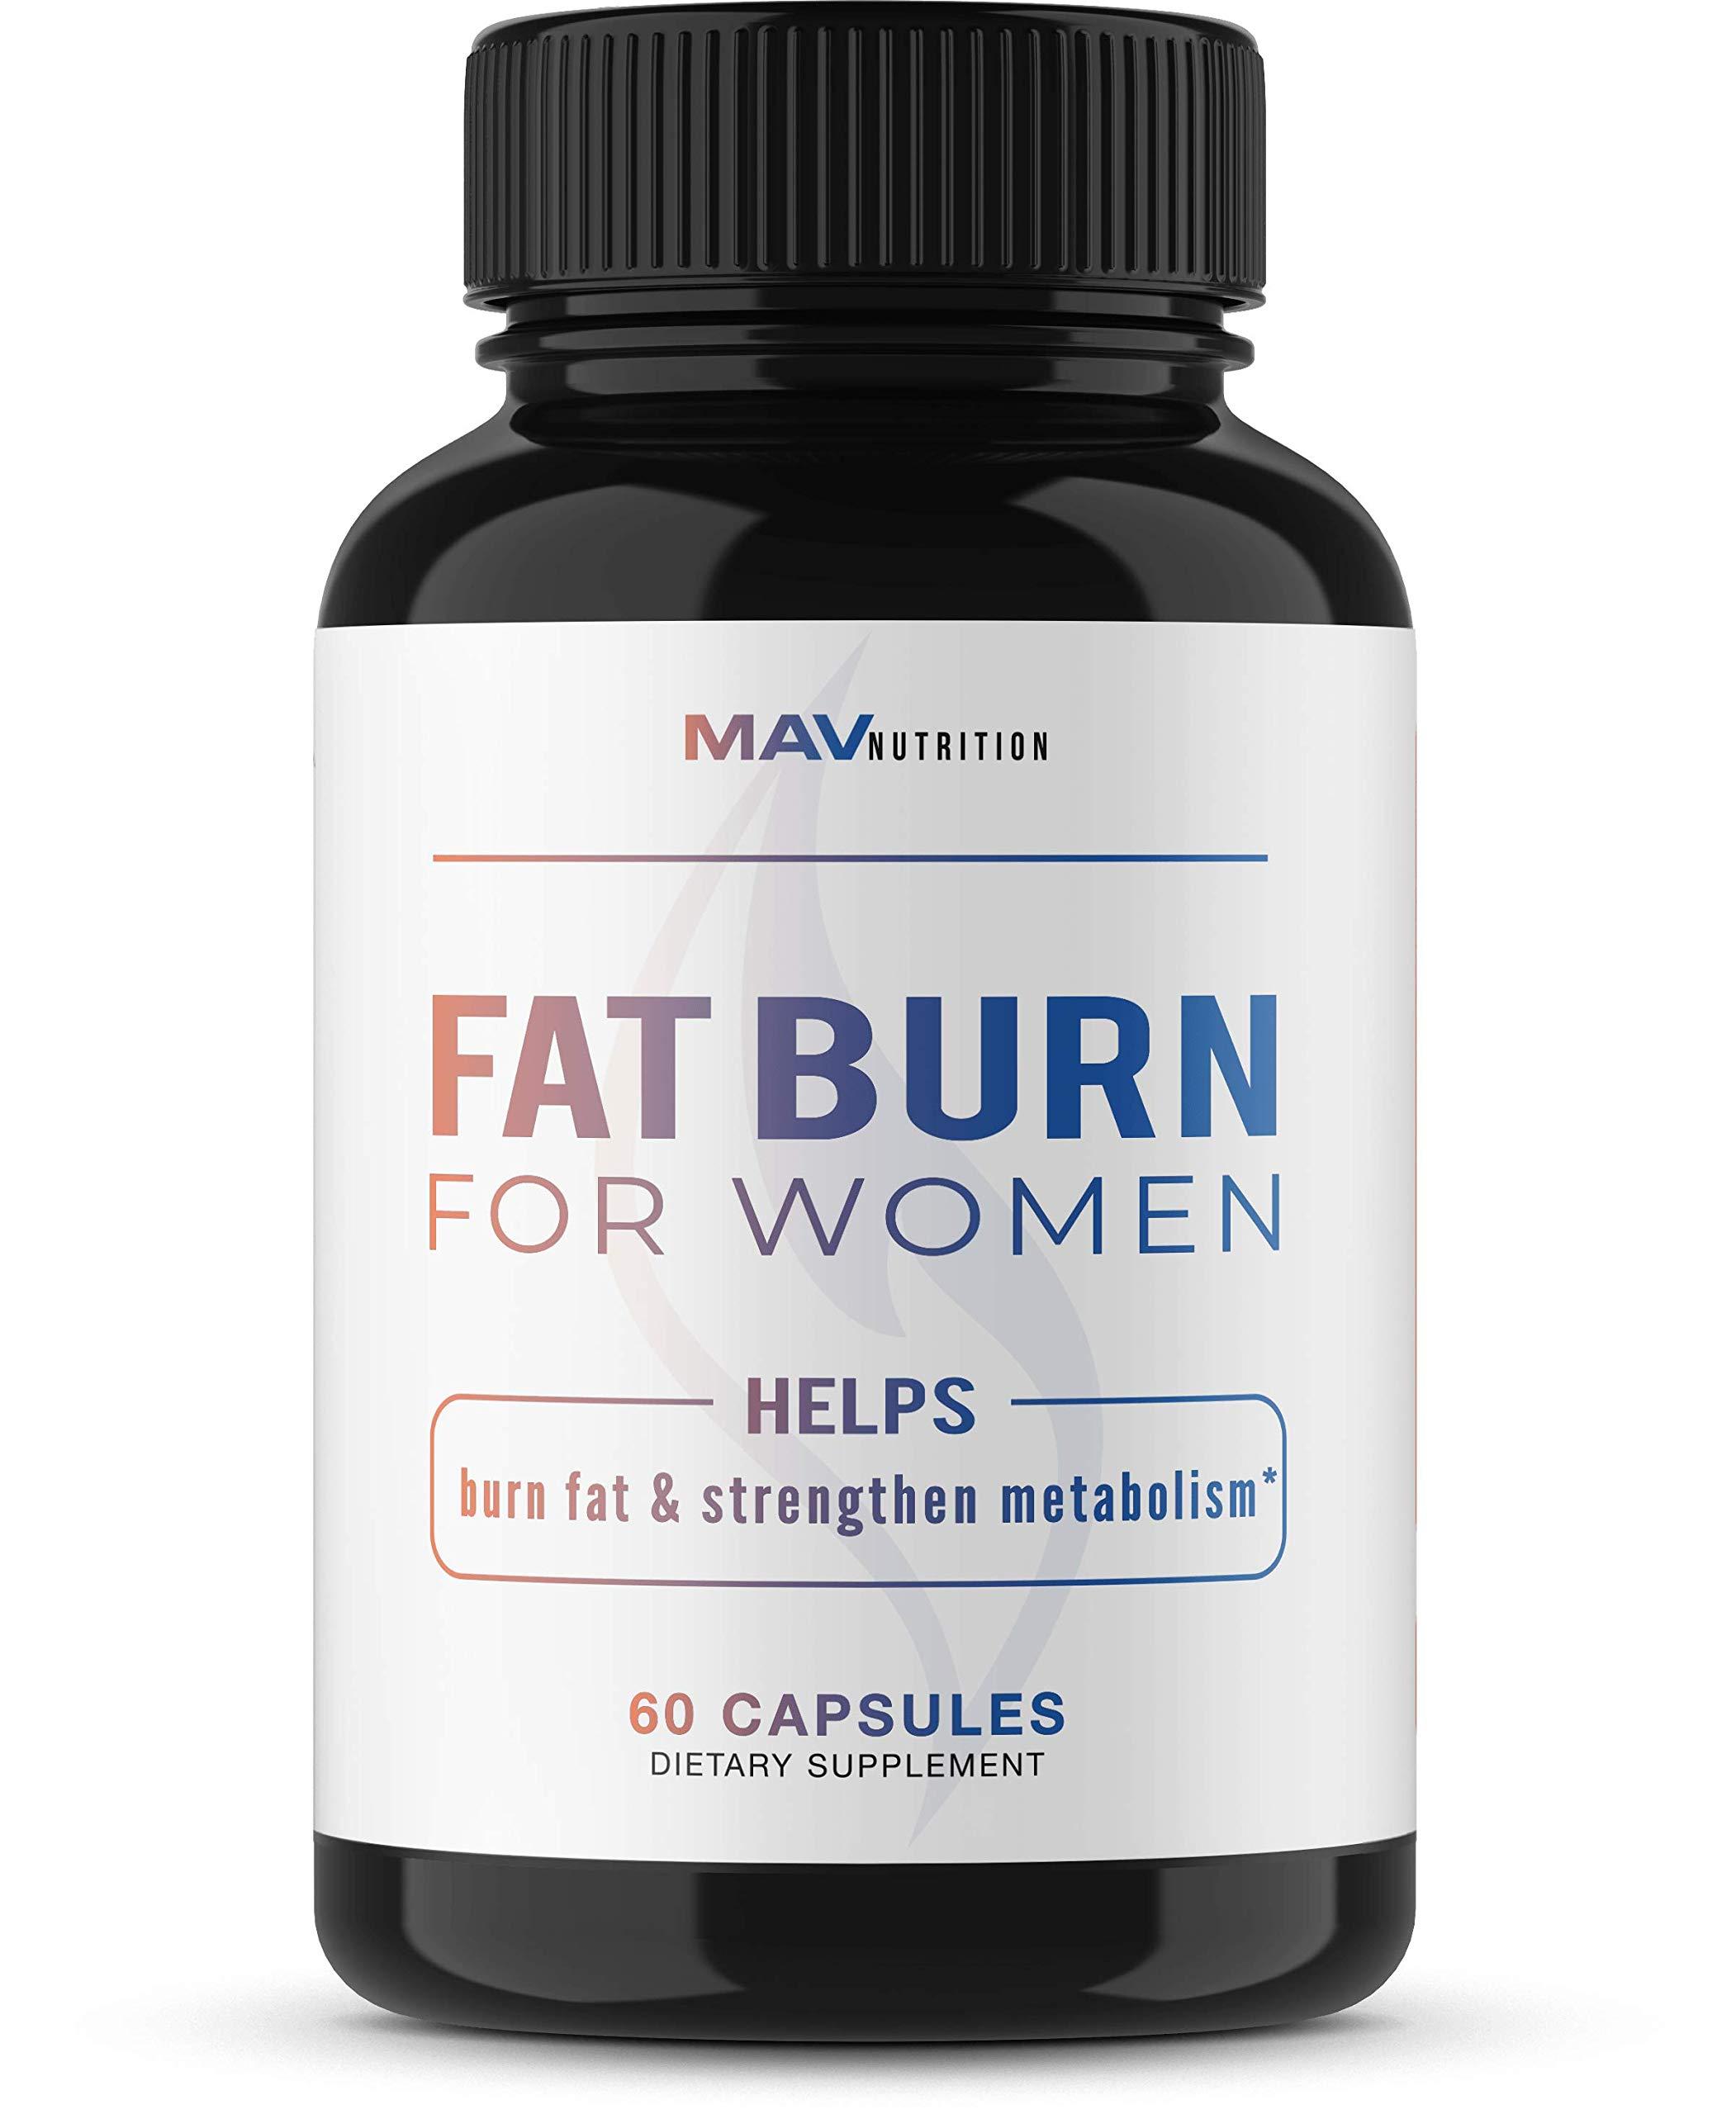 Womens Fat Burner Weight Loss Pills Designed for Increasing Healthy Metabolism, Supporting Energy Levels, Fat Loss, and Increasing Tone; Non-GMO, Gelatin-Free; 60 Vegetarian Capsules for Women by MAV Nutriton (Image #1)